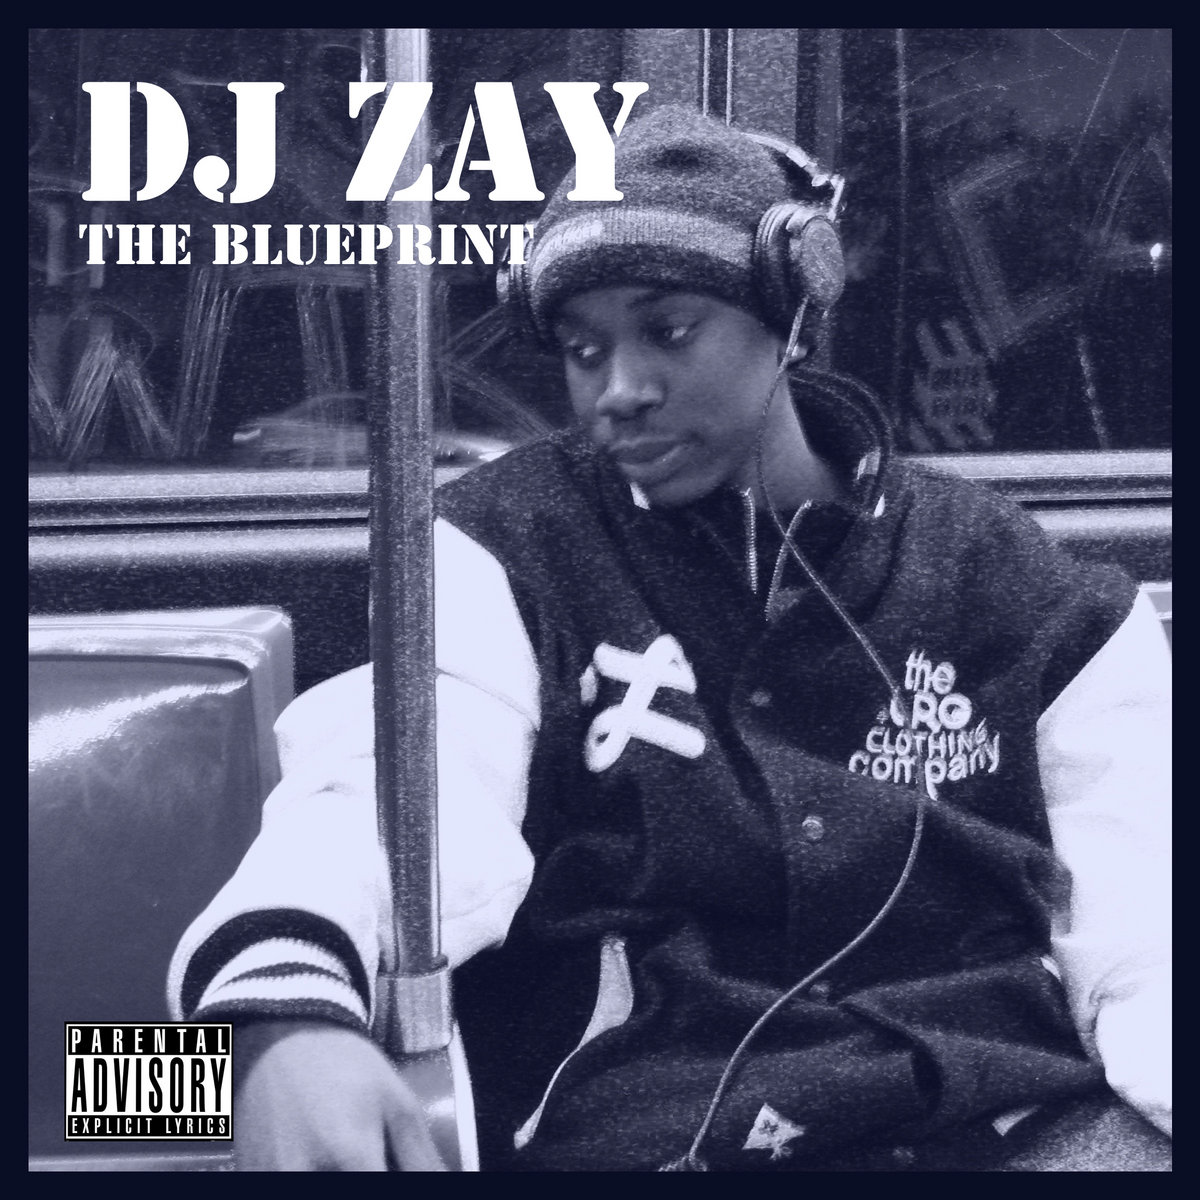 Hola hovito dj zay remix dj zay from the blueprint a fair alternative by dj zay malvernweather Image collections